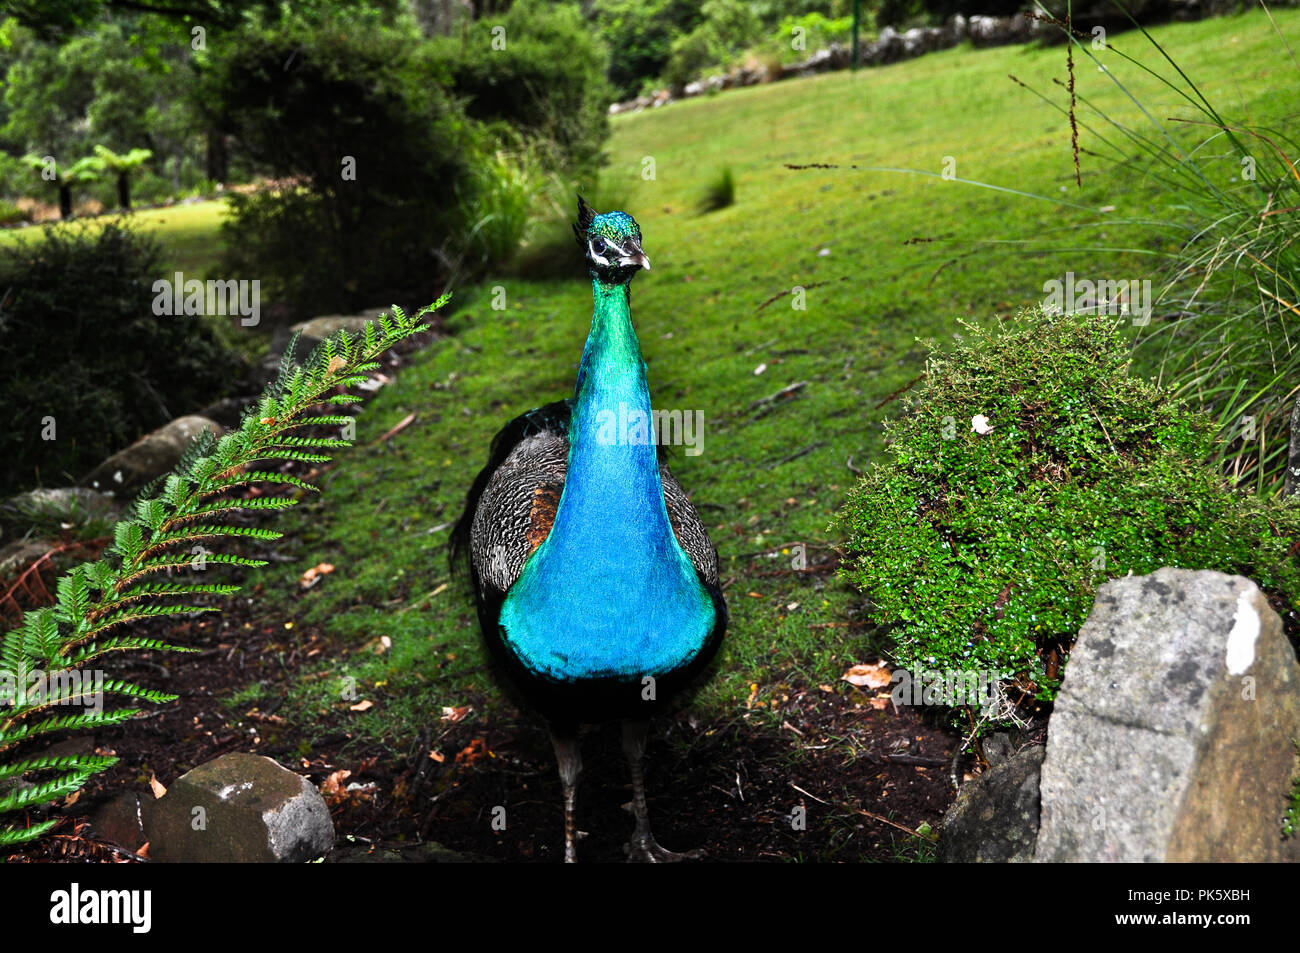 Close up of a male peacock with vibrant blue and green feathers Stock Photo